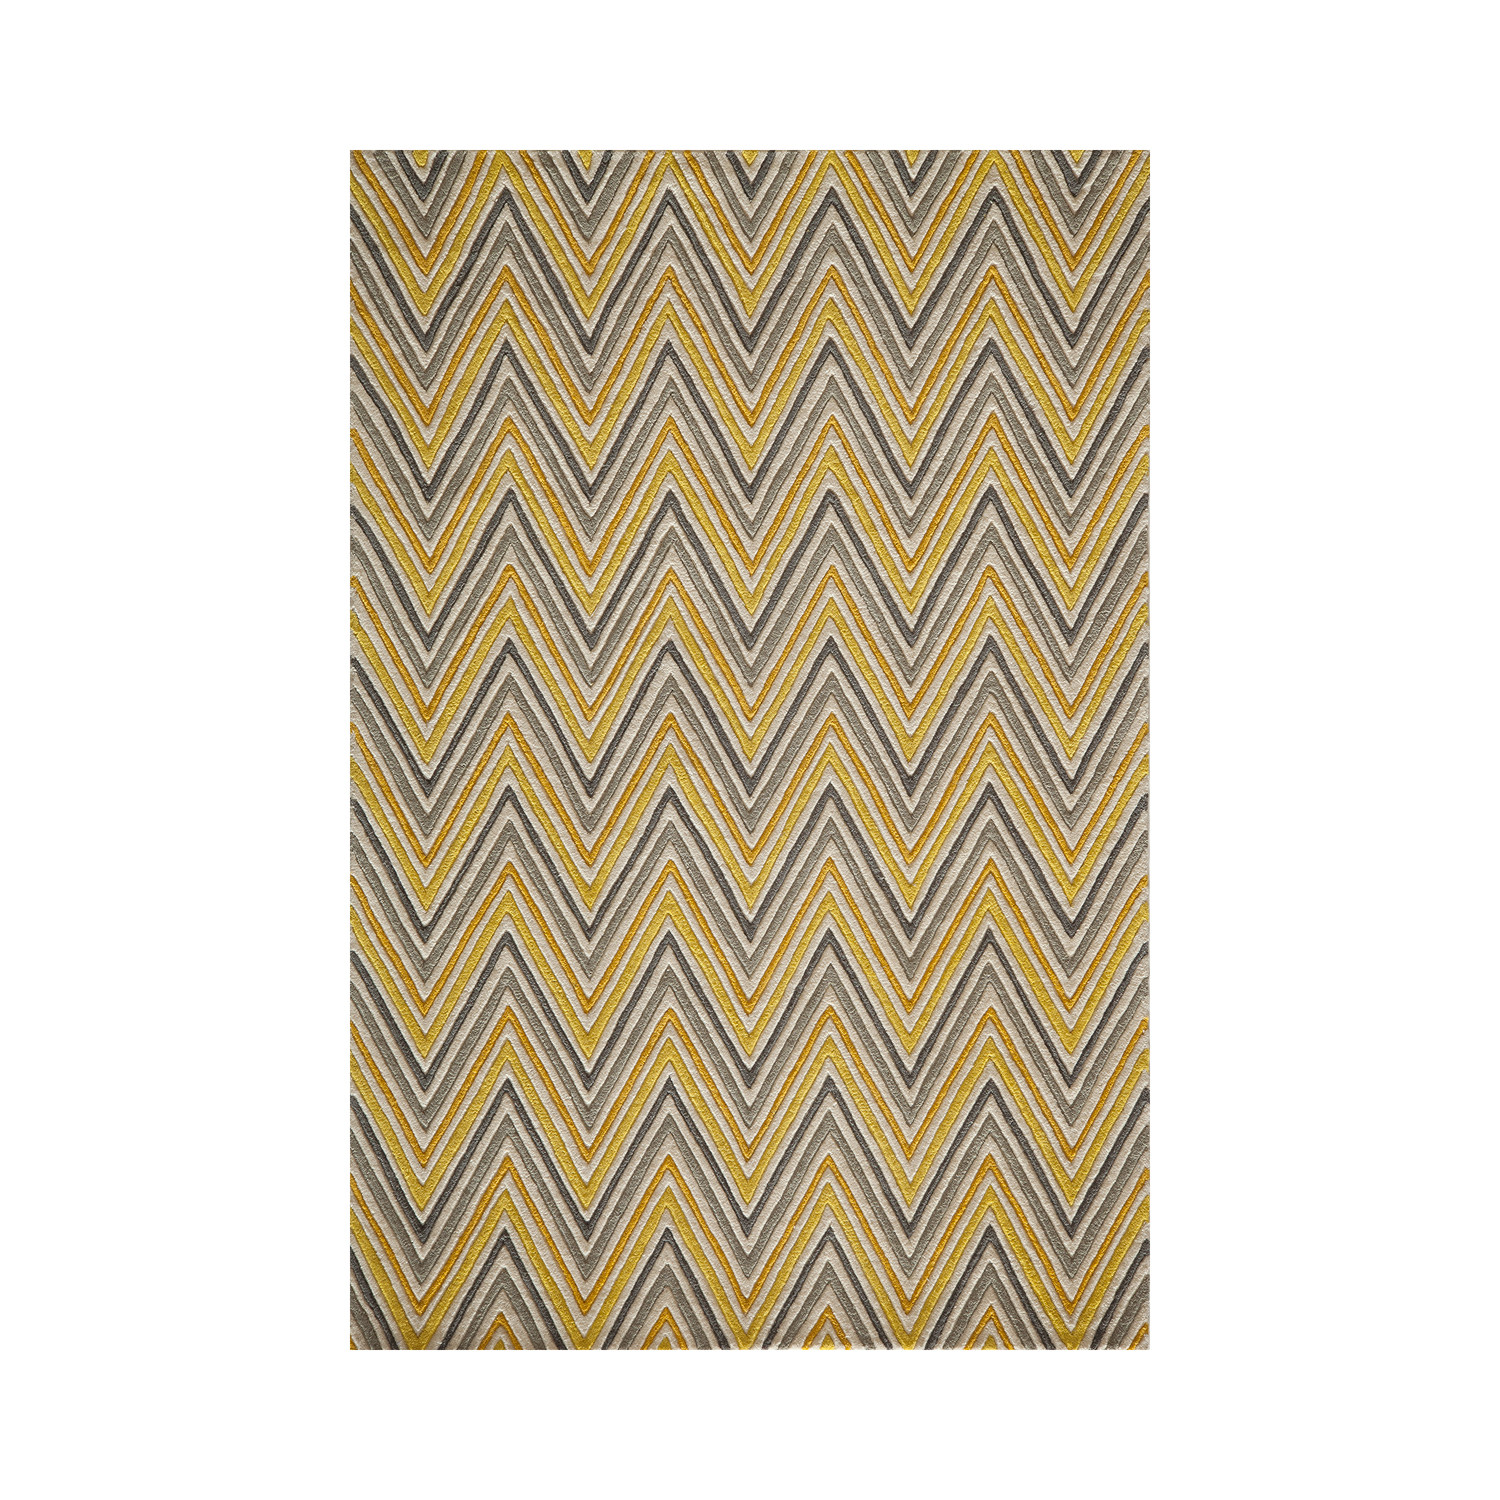 Skinny Chevron Rug Yellow 3 6 Quot L X 5 6 Quot W Luxe Rugs